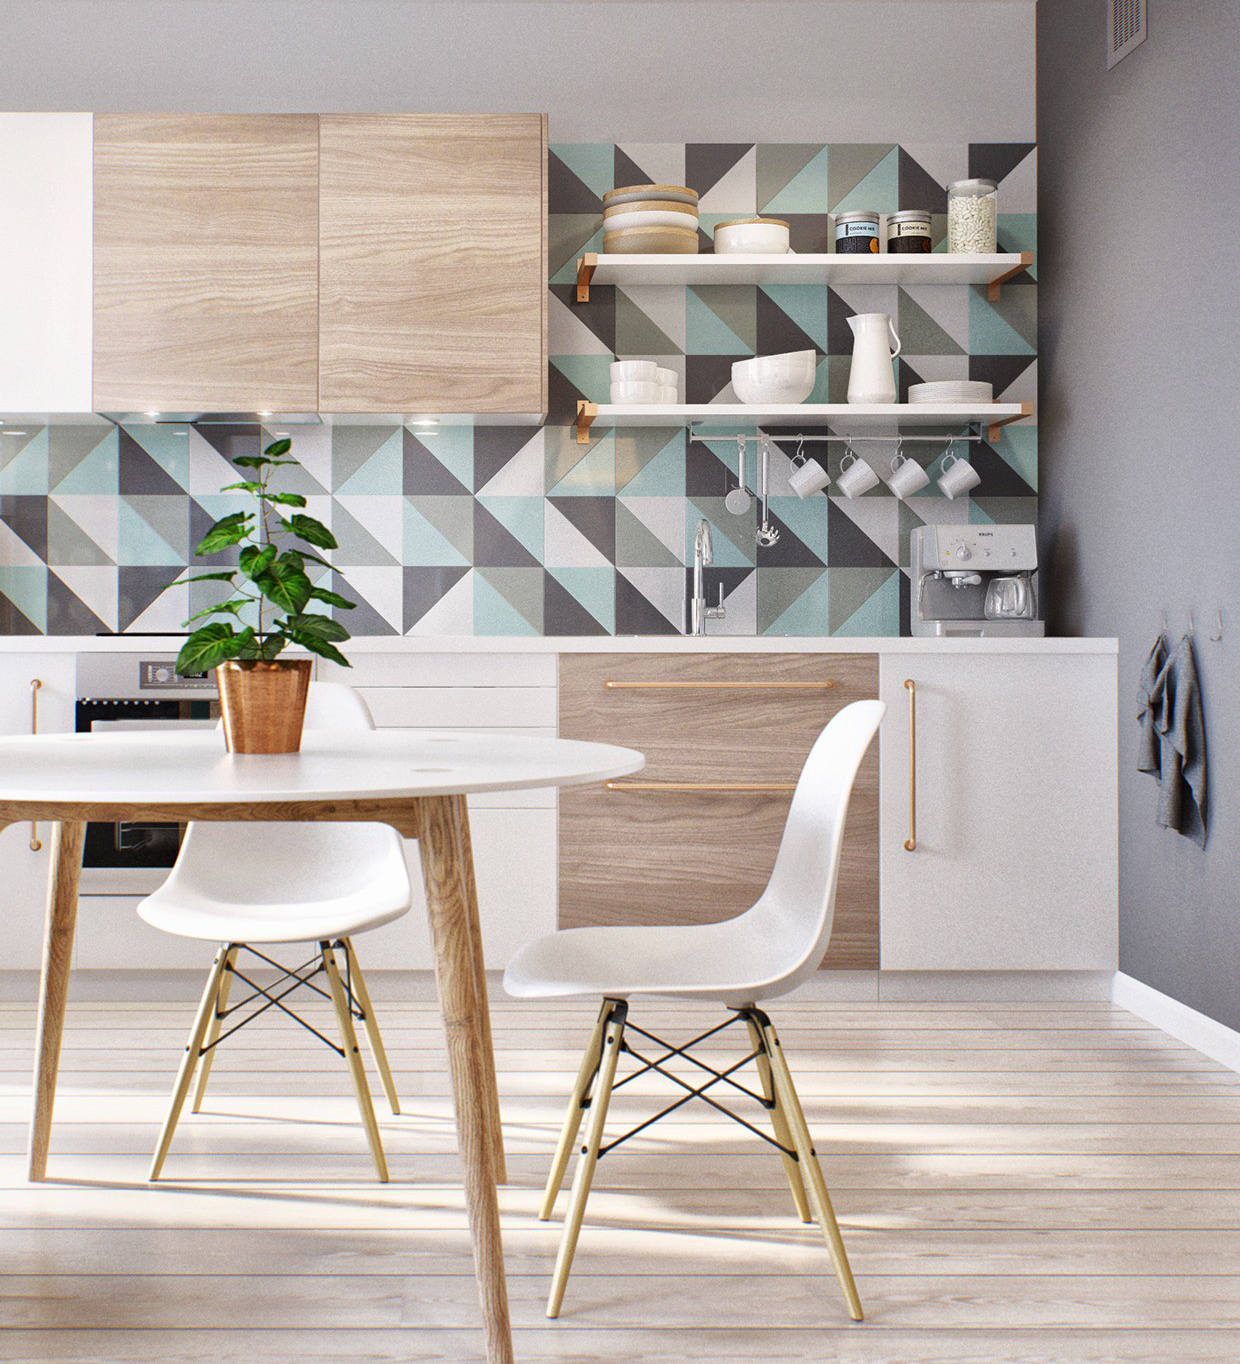 geometric tile - Russian studio apartment with pastel geometric pattern tile and minimalist cabinets - triptod.com via atticmag